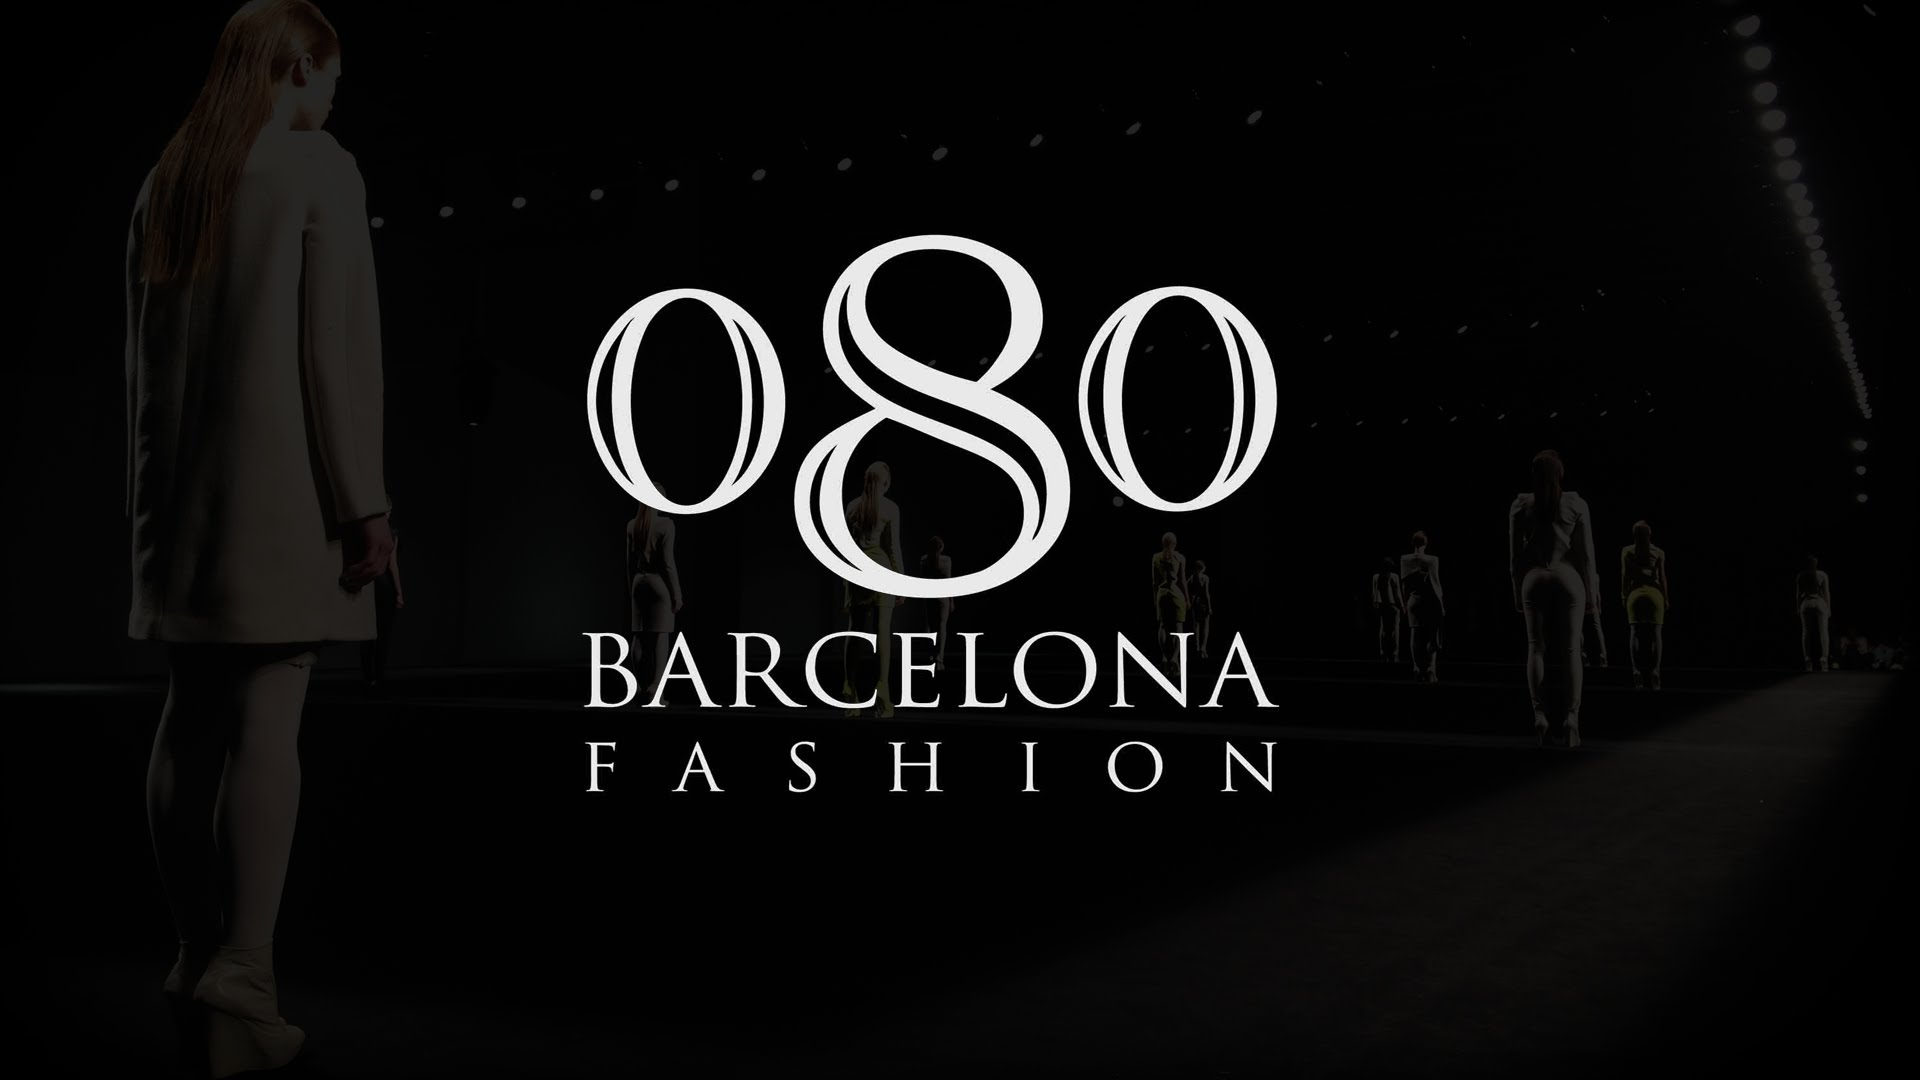 Descubre el 080 Barcelona fashion | Aragaza - Your shirt made in Barcelona - Quality shirts